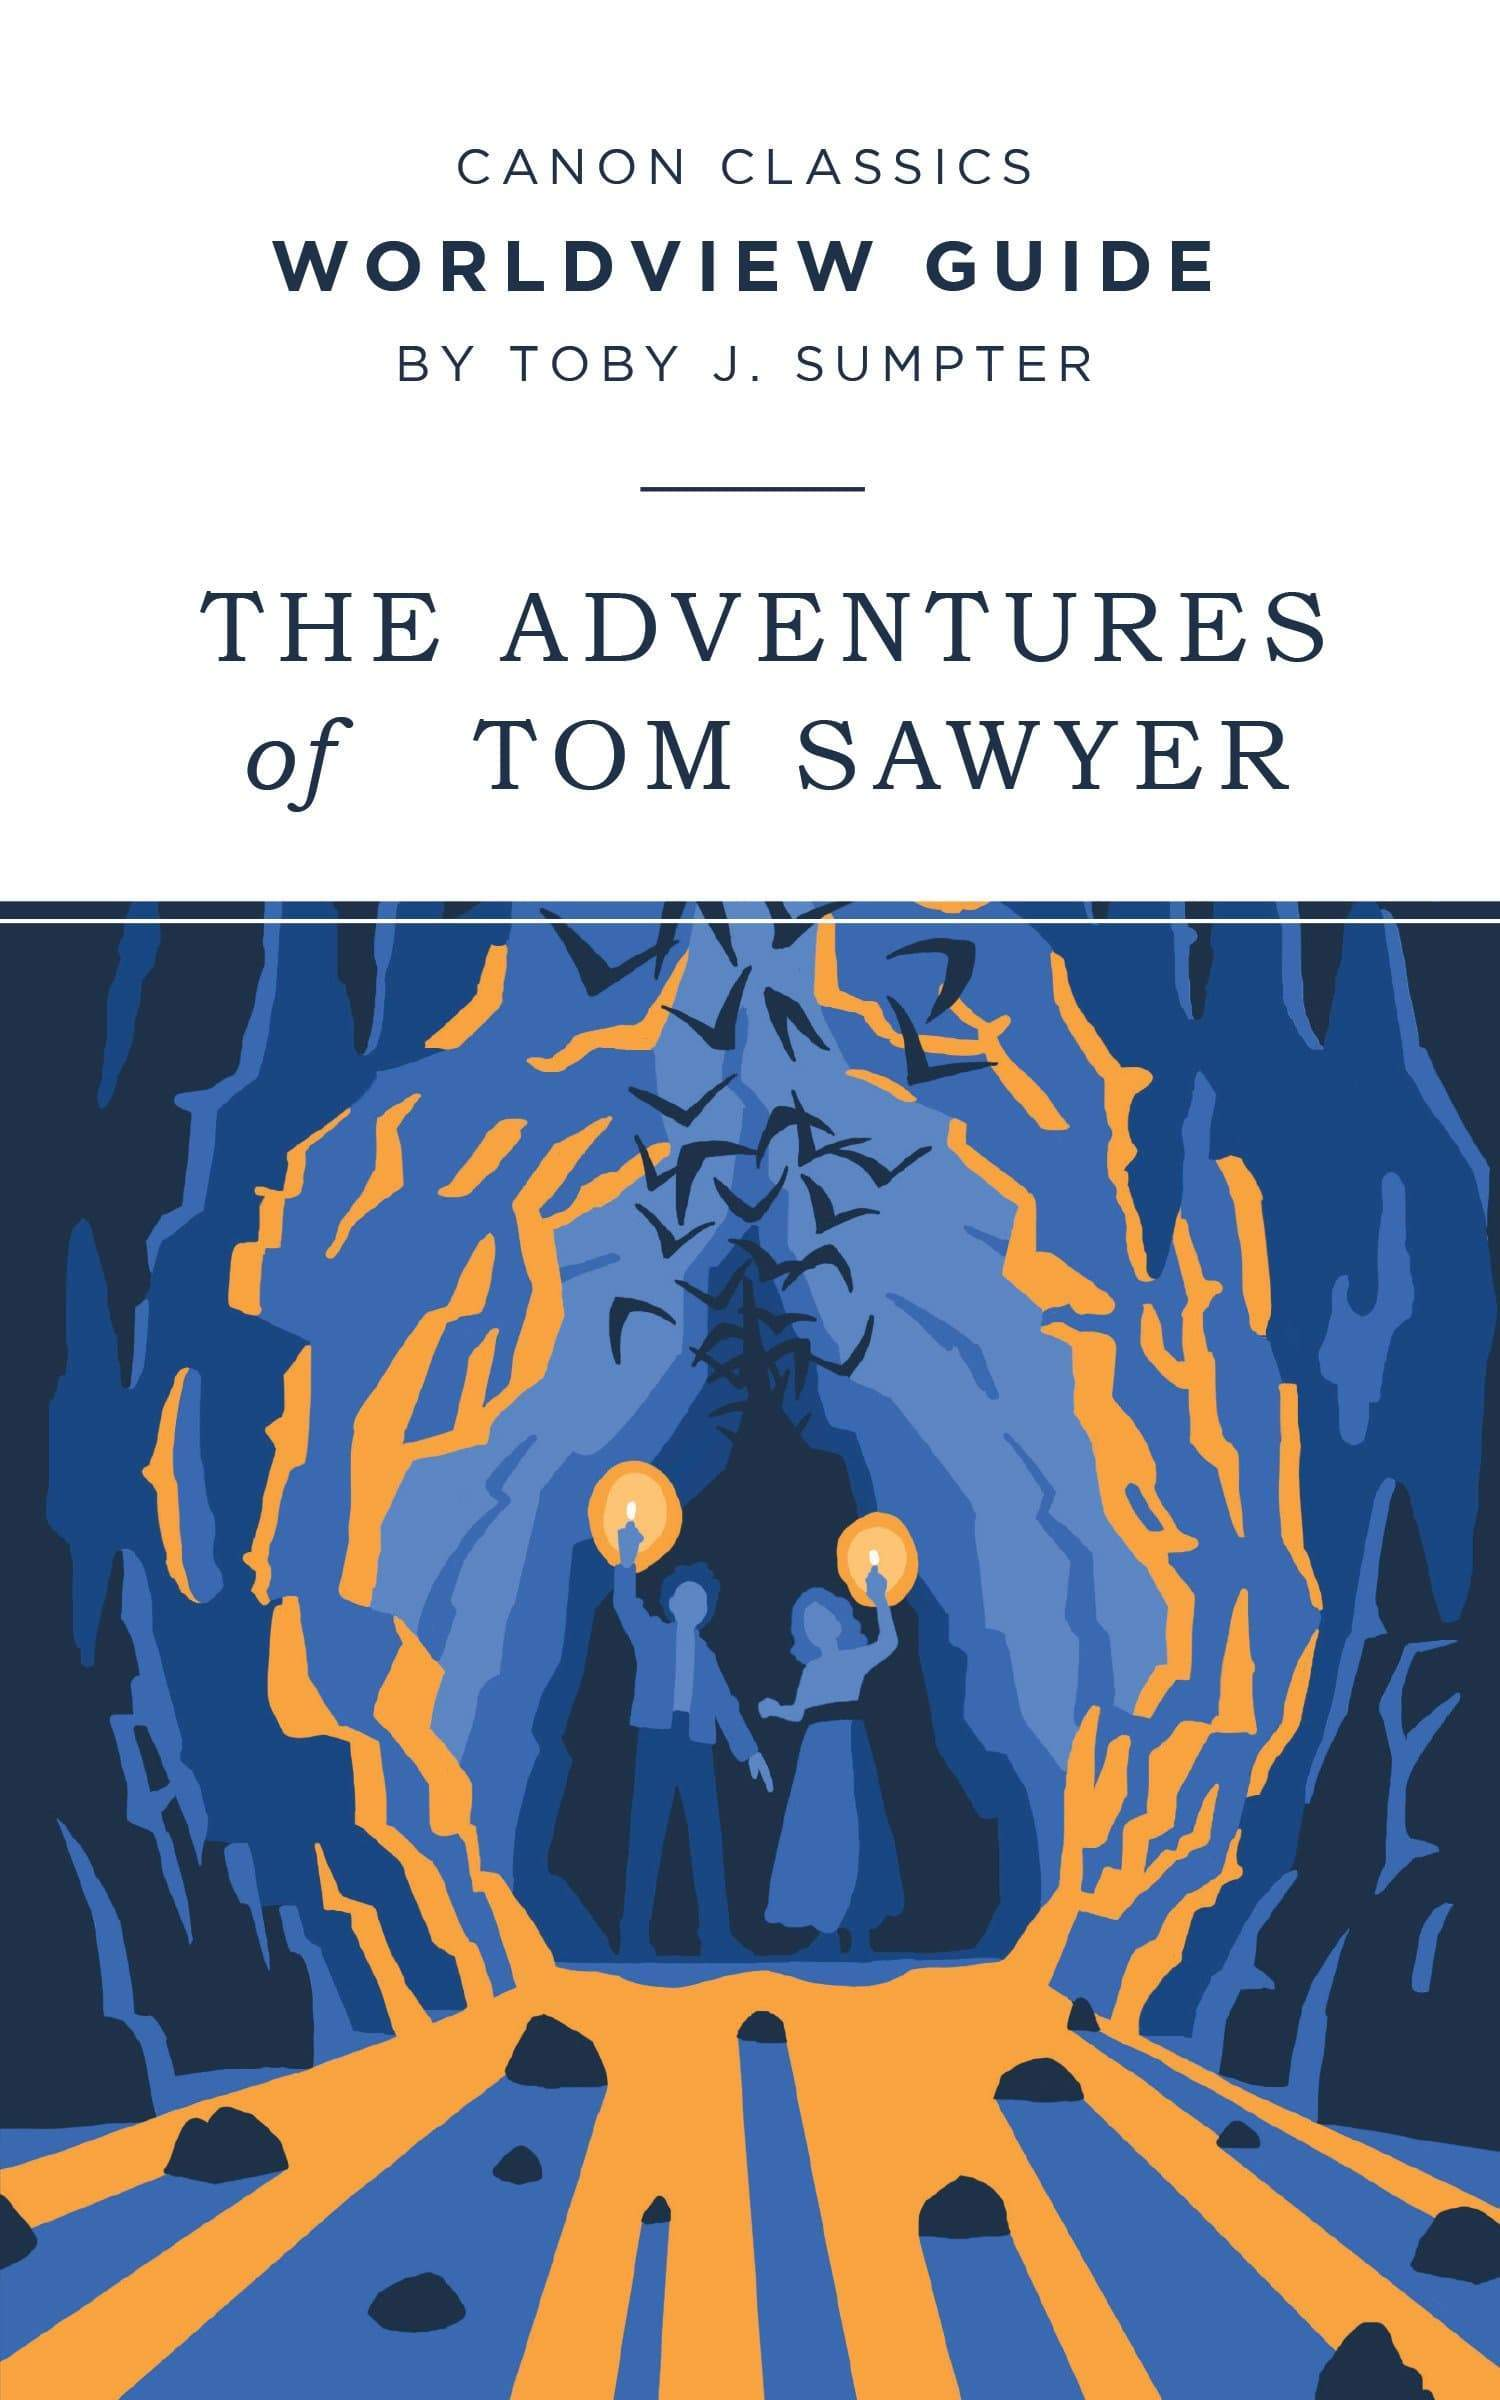 Worldview Guide for The Adventures of Tom Sawyer